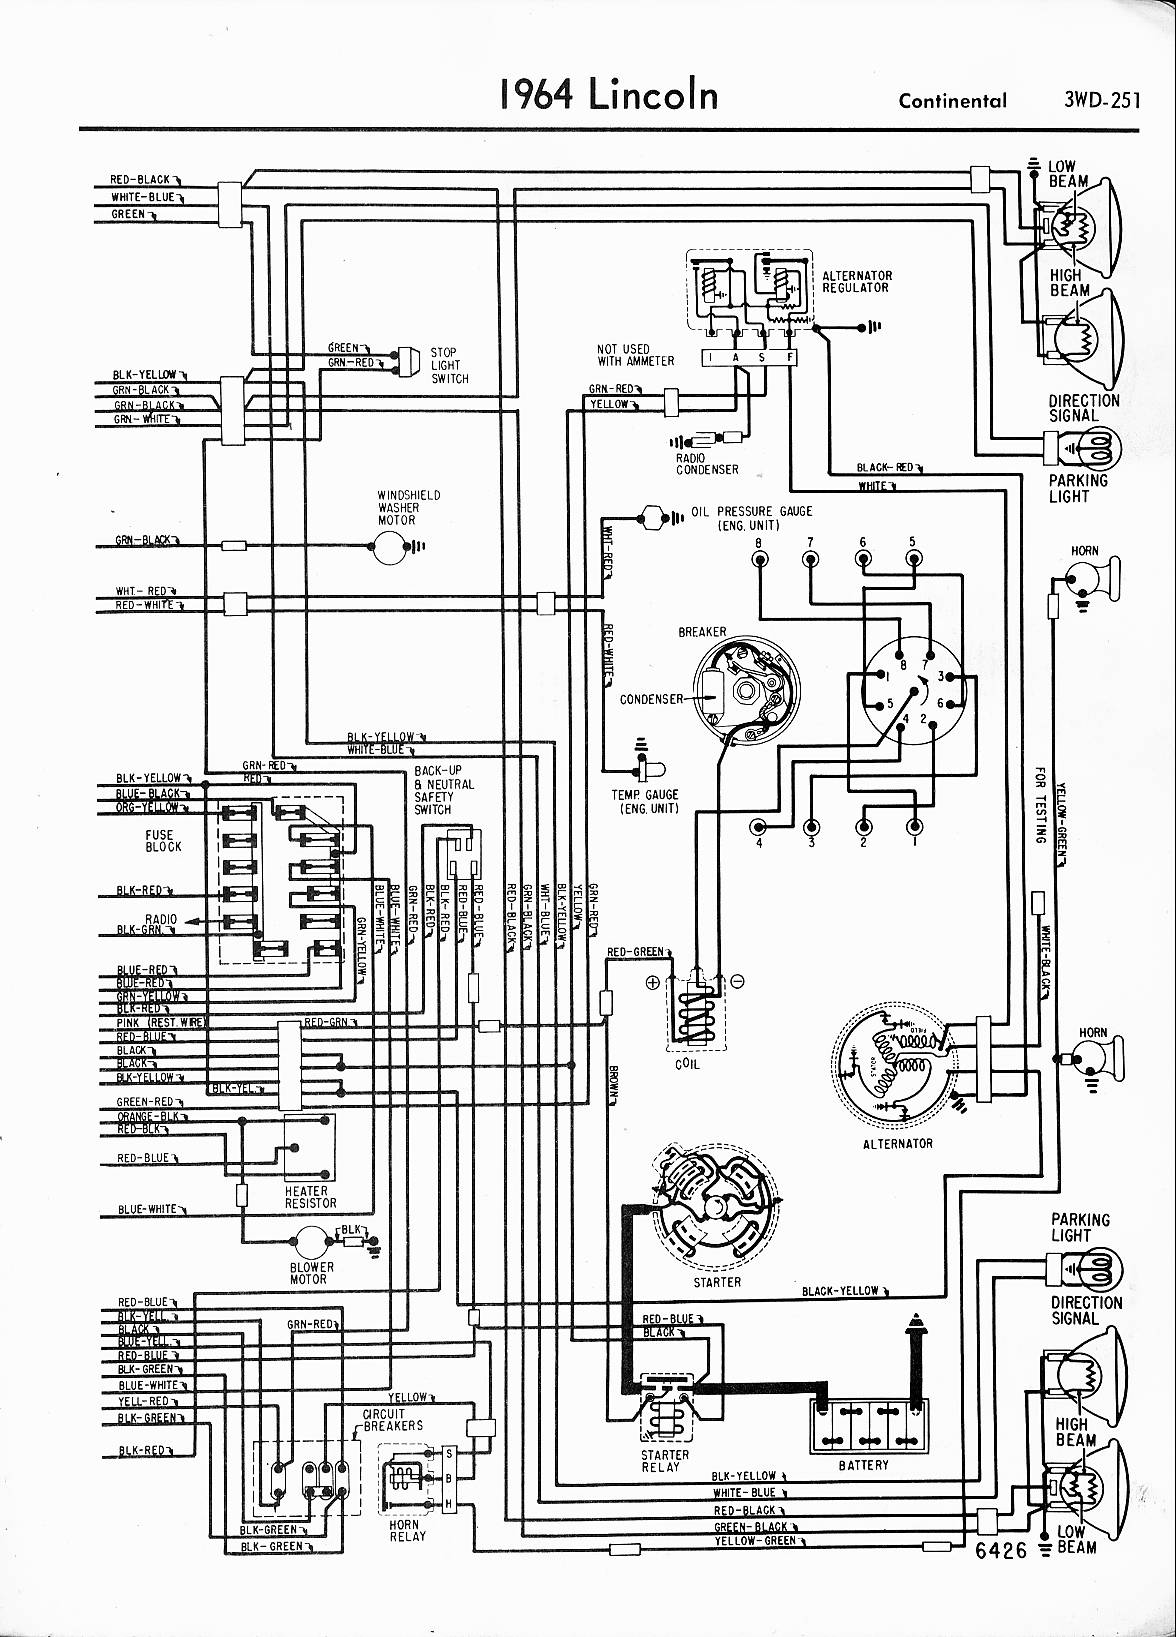 1975 Lincoln Continental Wiring Diagram Good 1st 71 Dodge Dart Neutral Safety Switch Schematic Third Level Rh 19 8 16 Jacobwinterstein Com 1964 1965